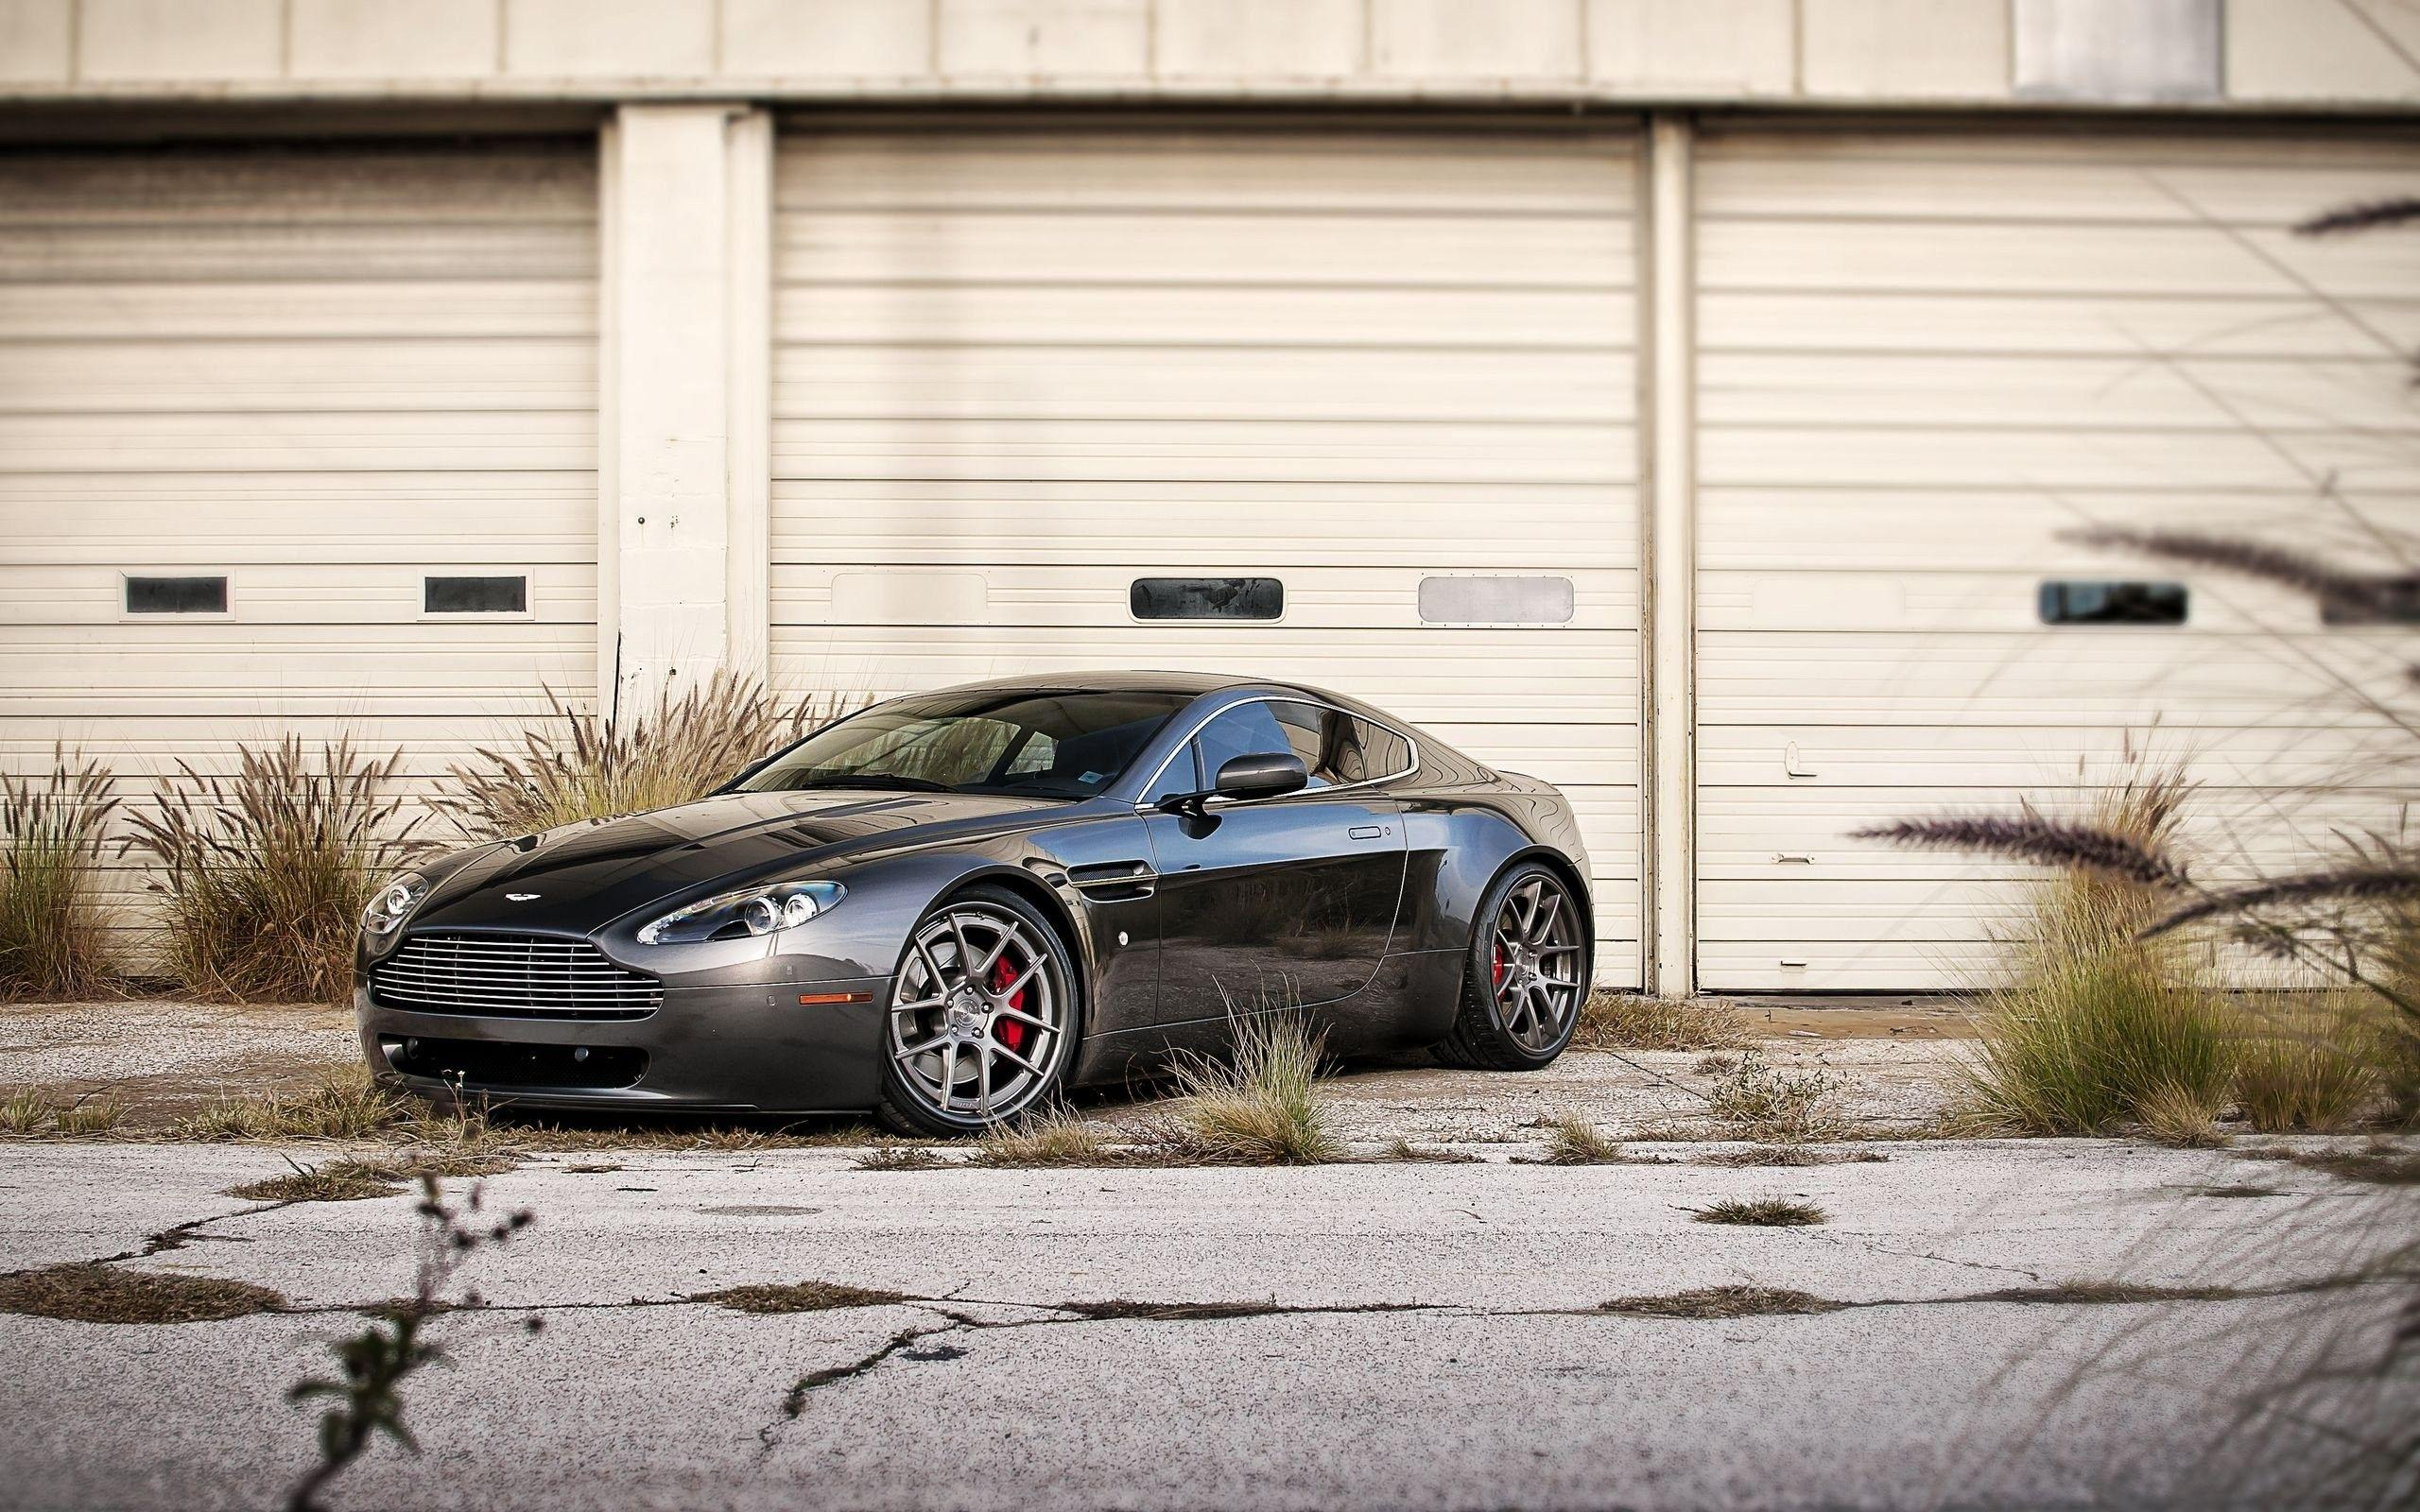 Download Wallpapers 2560x1600 Aston martin, V8, Vantage 2560x1600